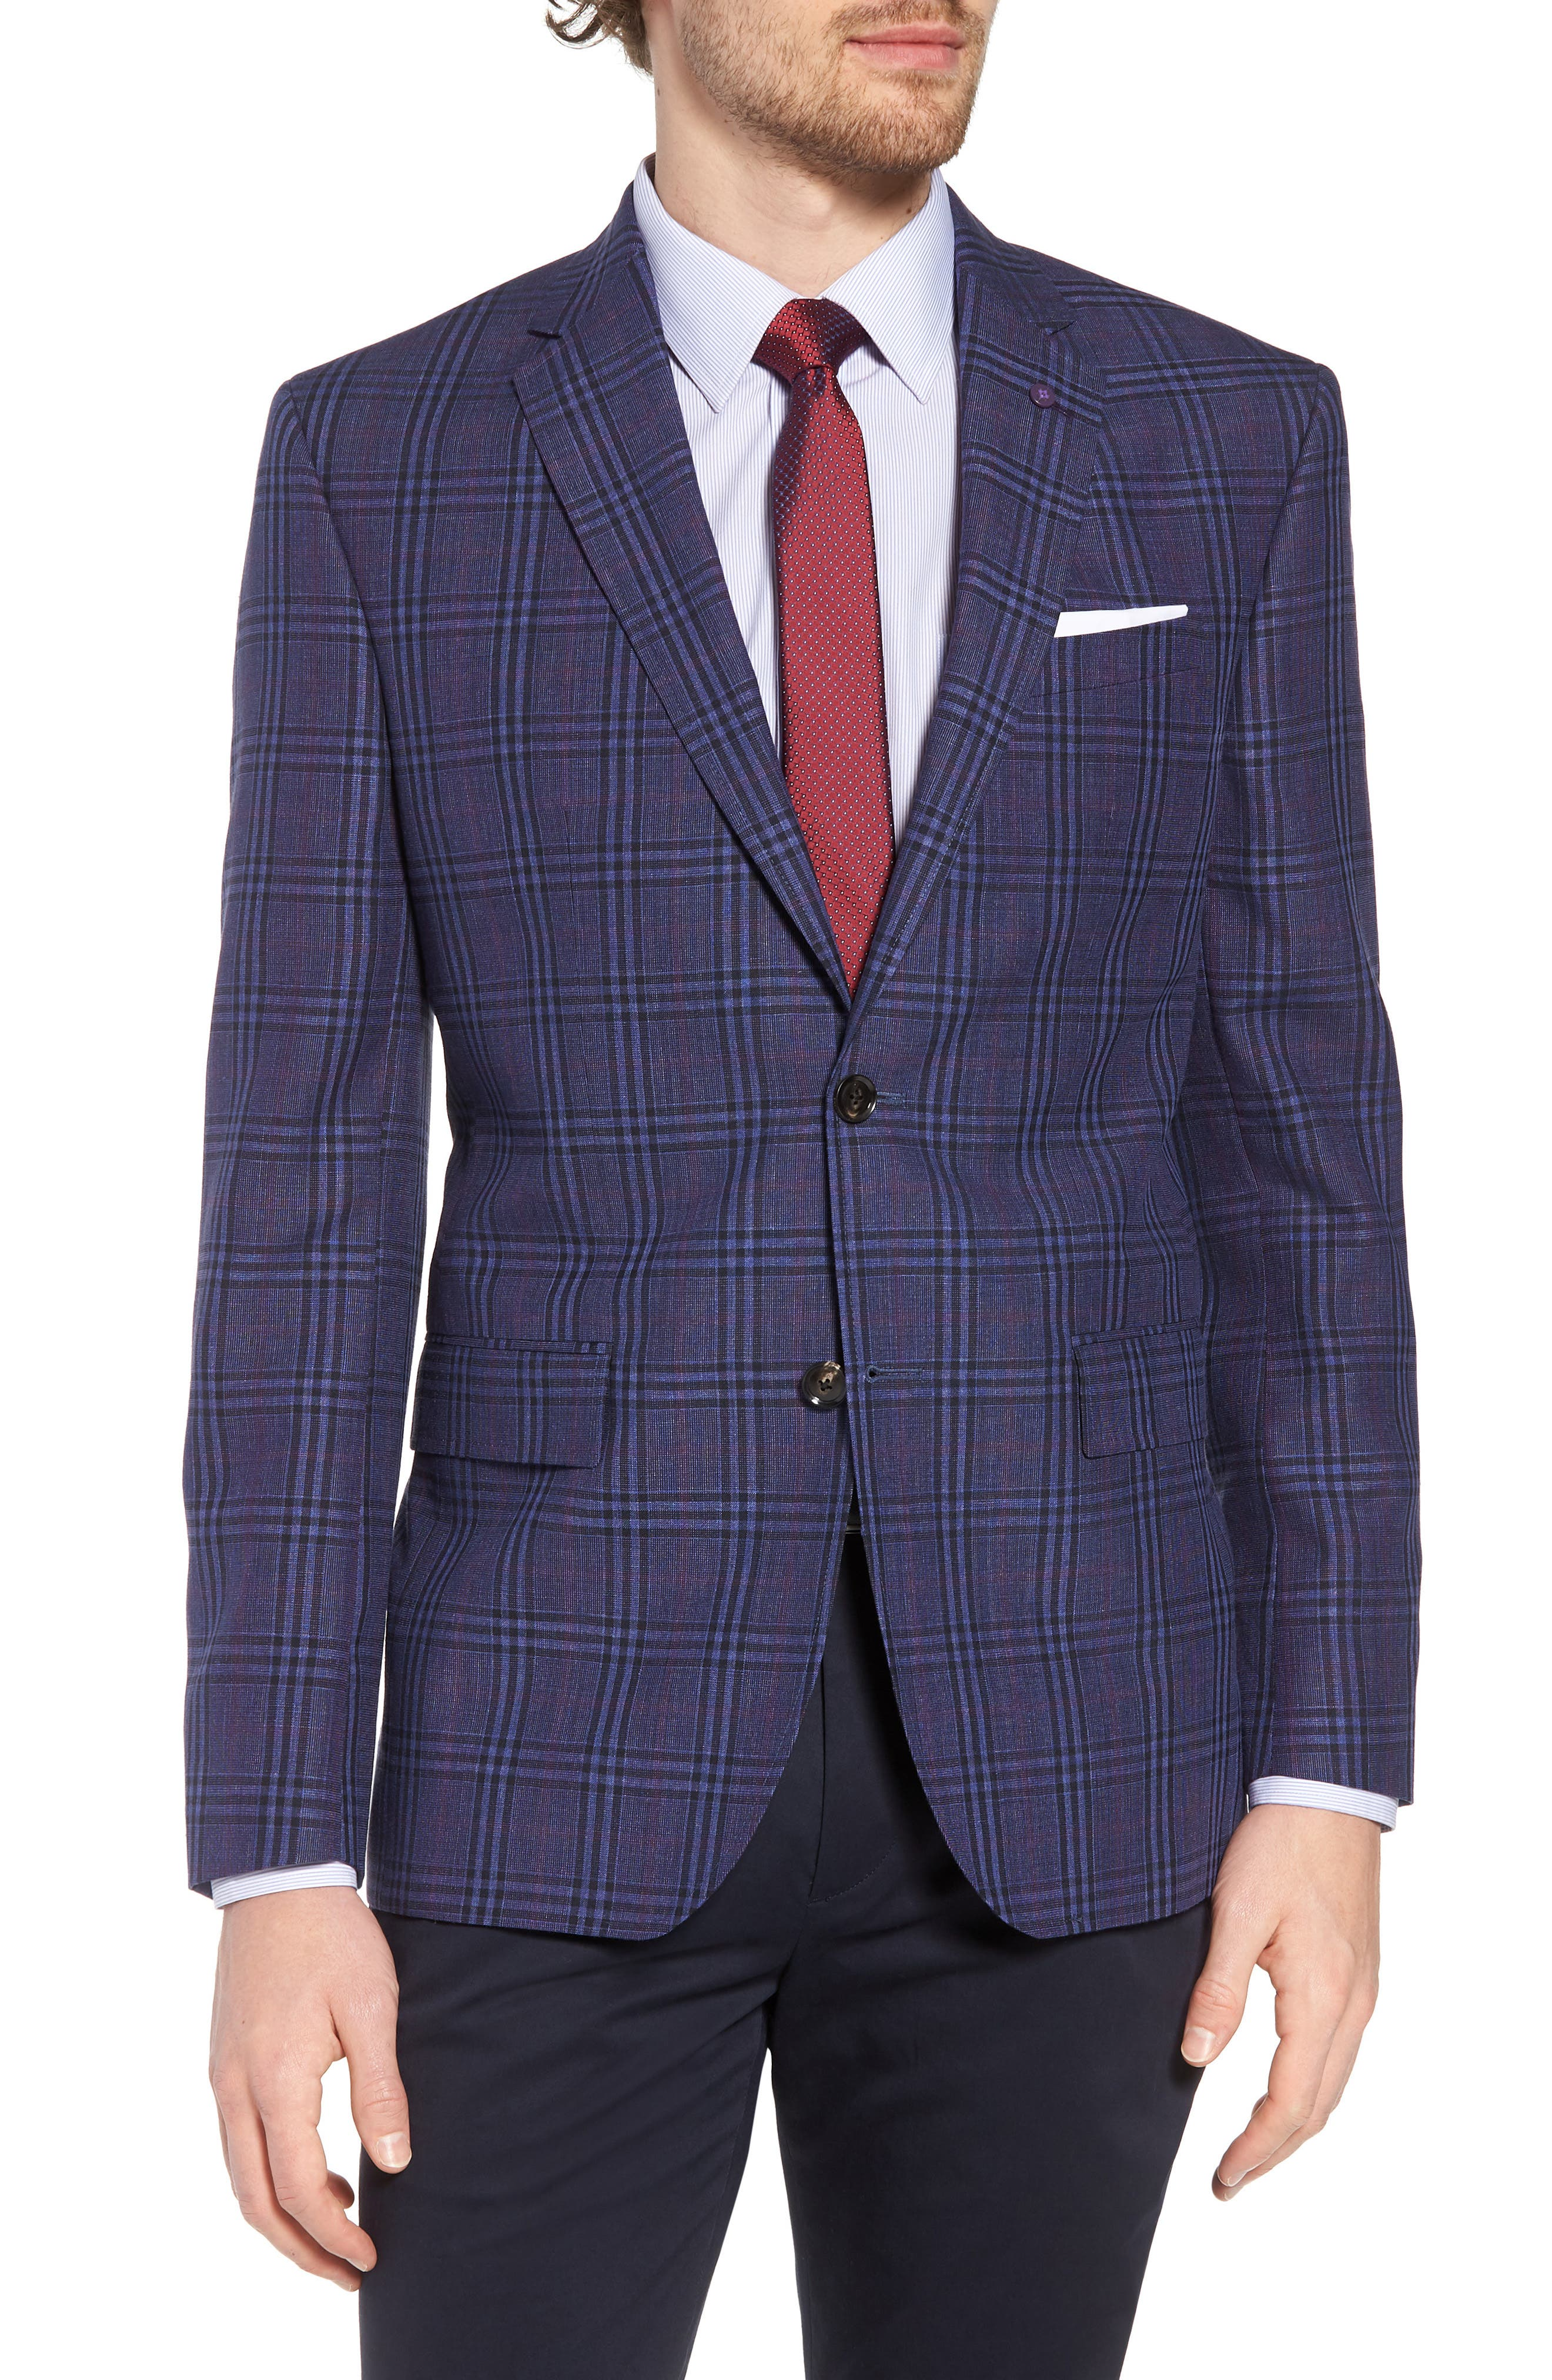 Main Image - Ted Baker London Jay Trim Fit Plaid Wool & Linen Sport Coat